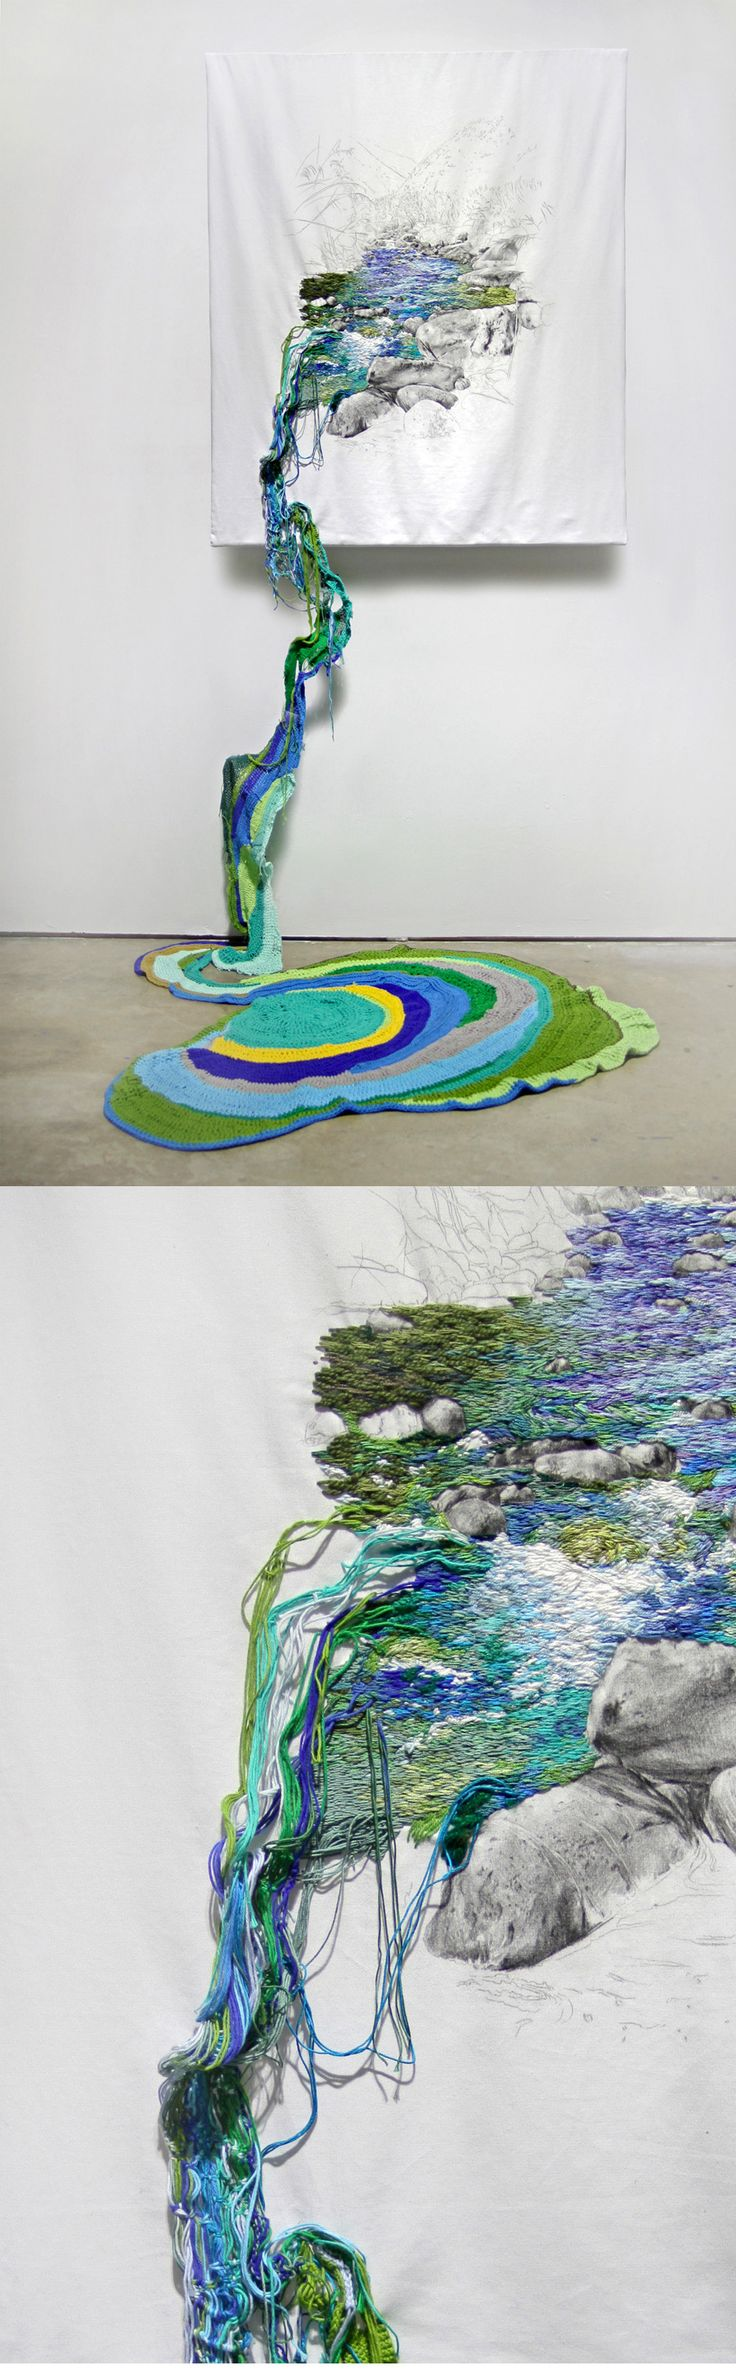 New Embroidered Landscapes That Cascade off the Wall by Ana Teresa Barboza